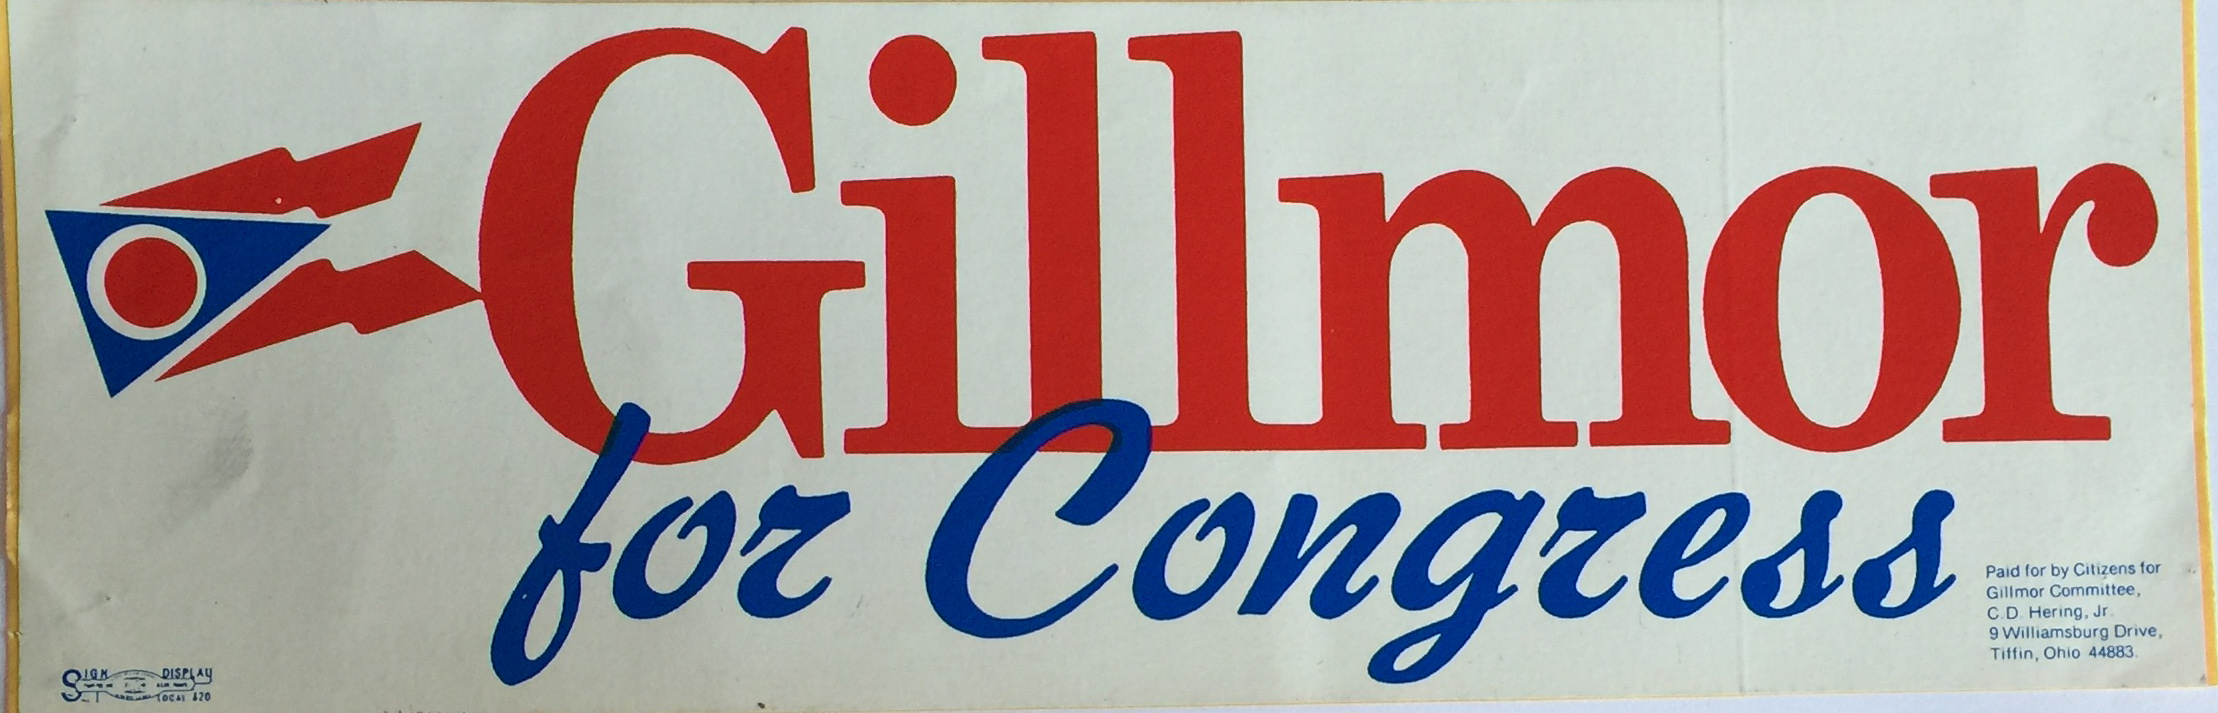 Sticker-congress GILLMOR.jpg